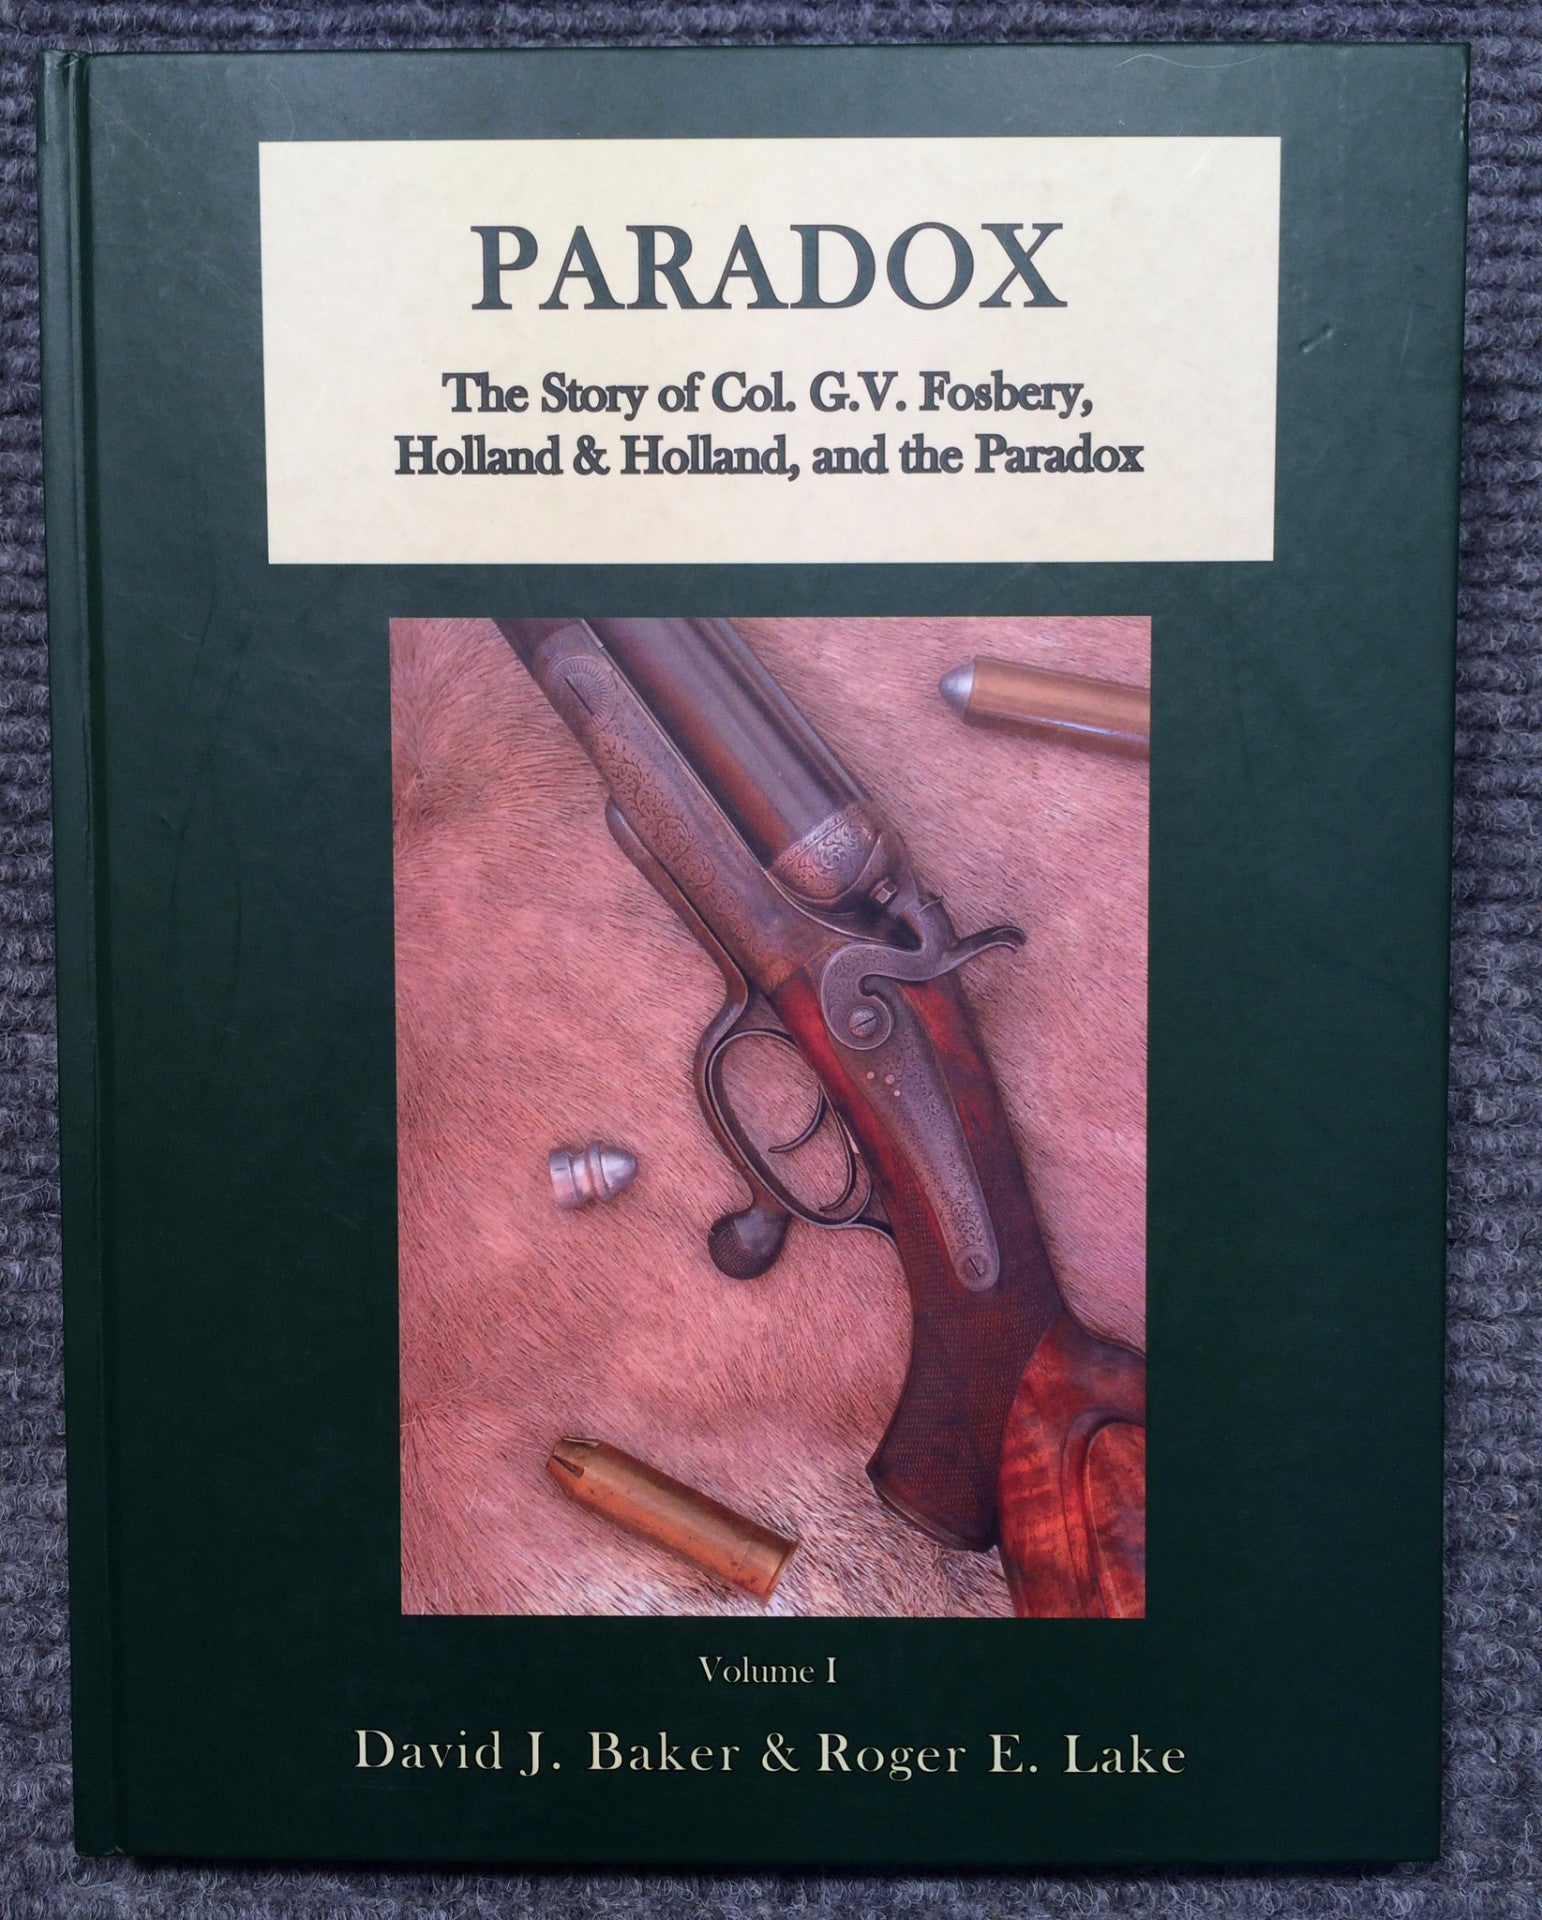 """Paradox: The Story of Col. G.V Fosbery, Holland & Holland and the Paradox"" by David J. Baker and Roger E. Lake"